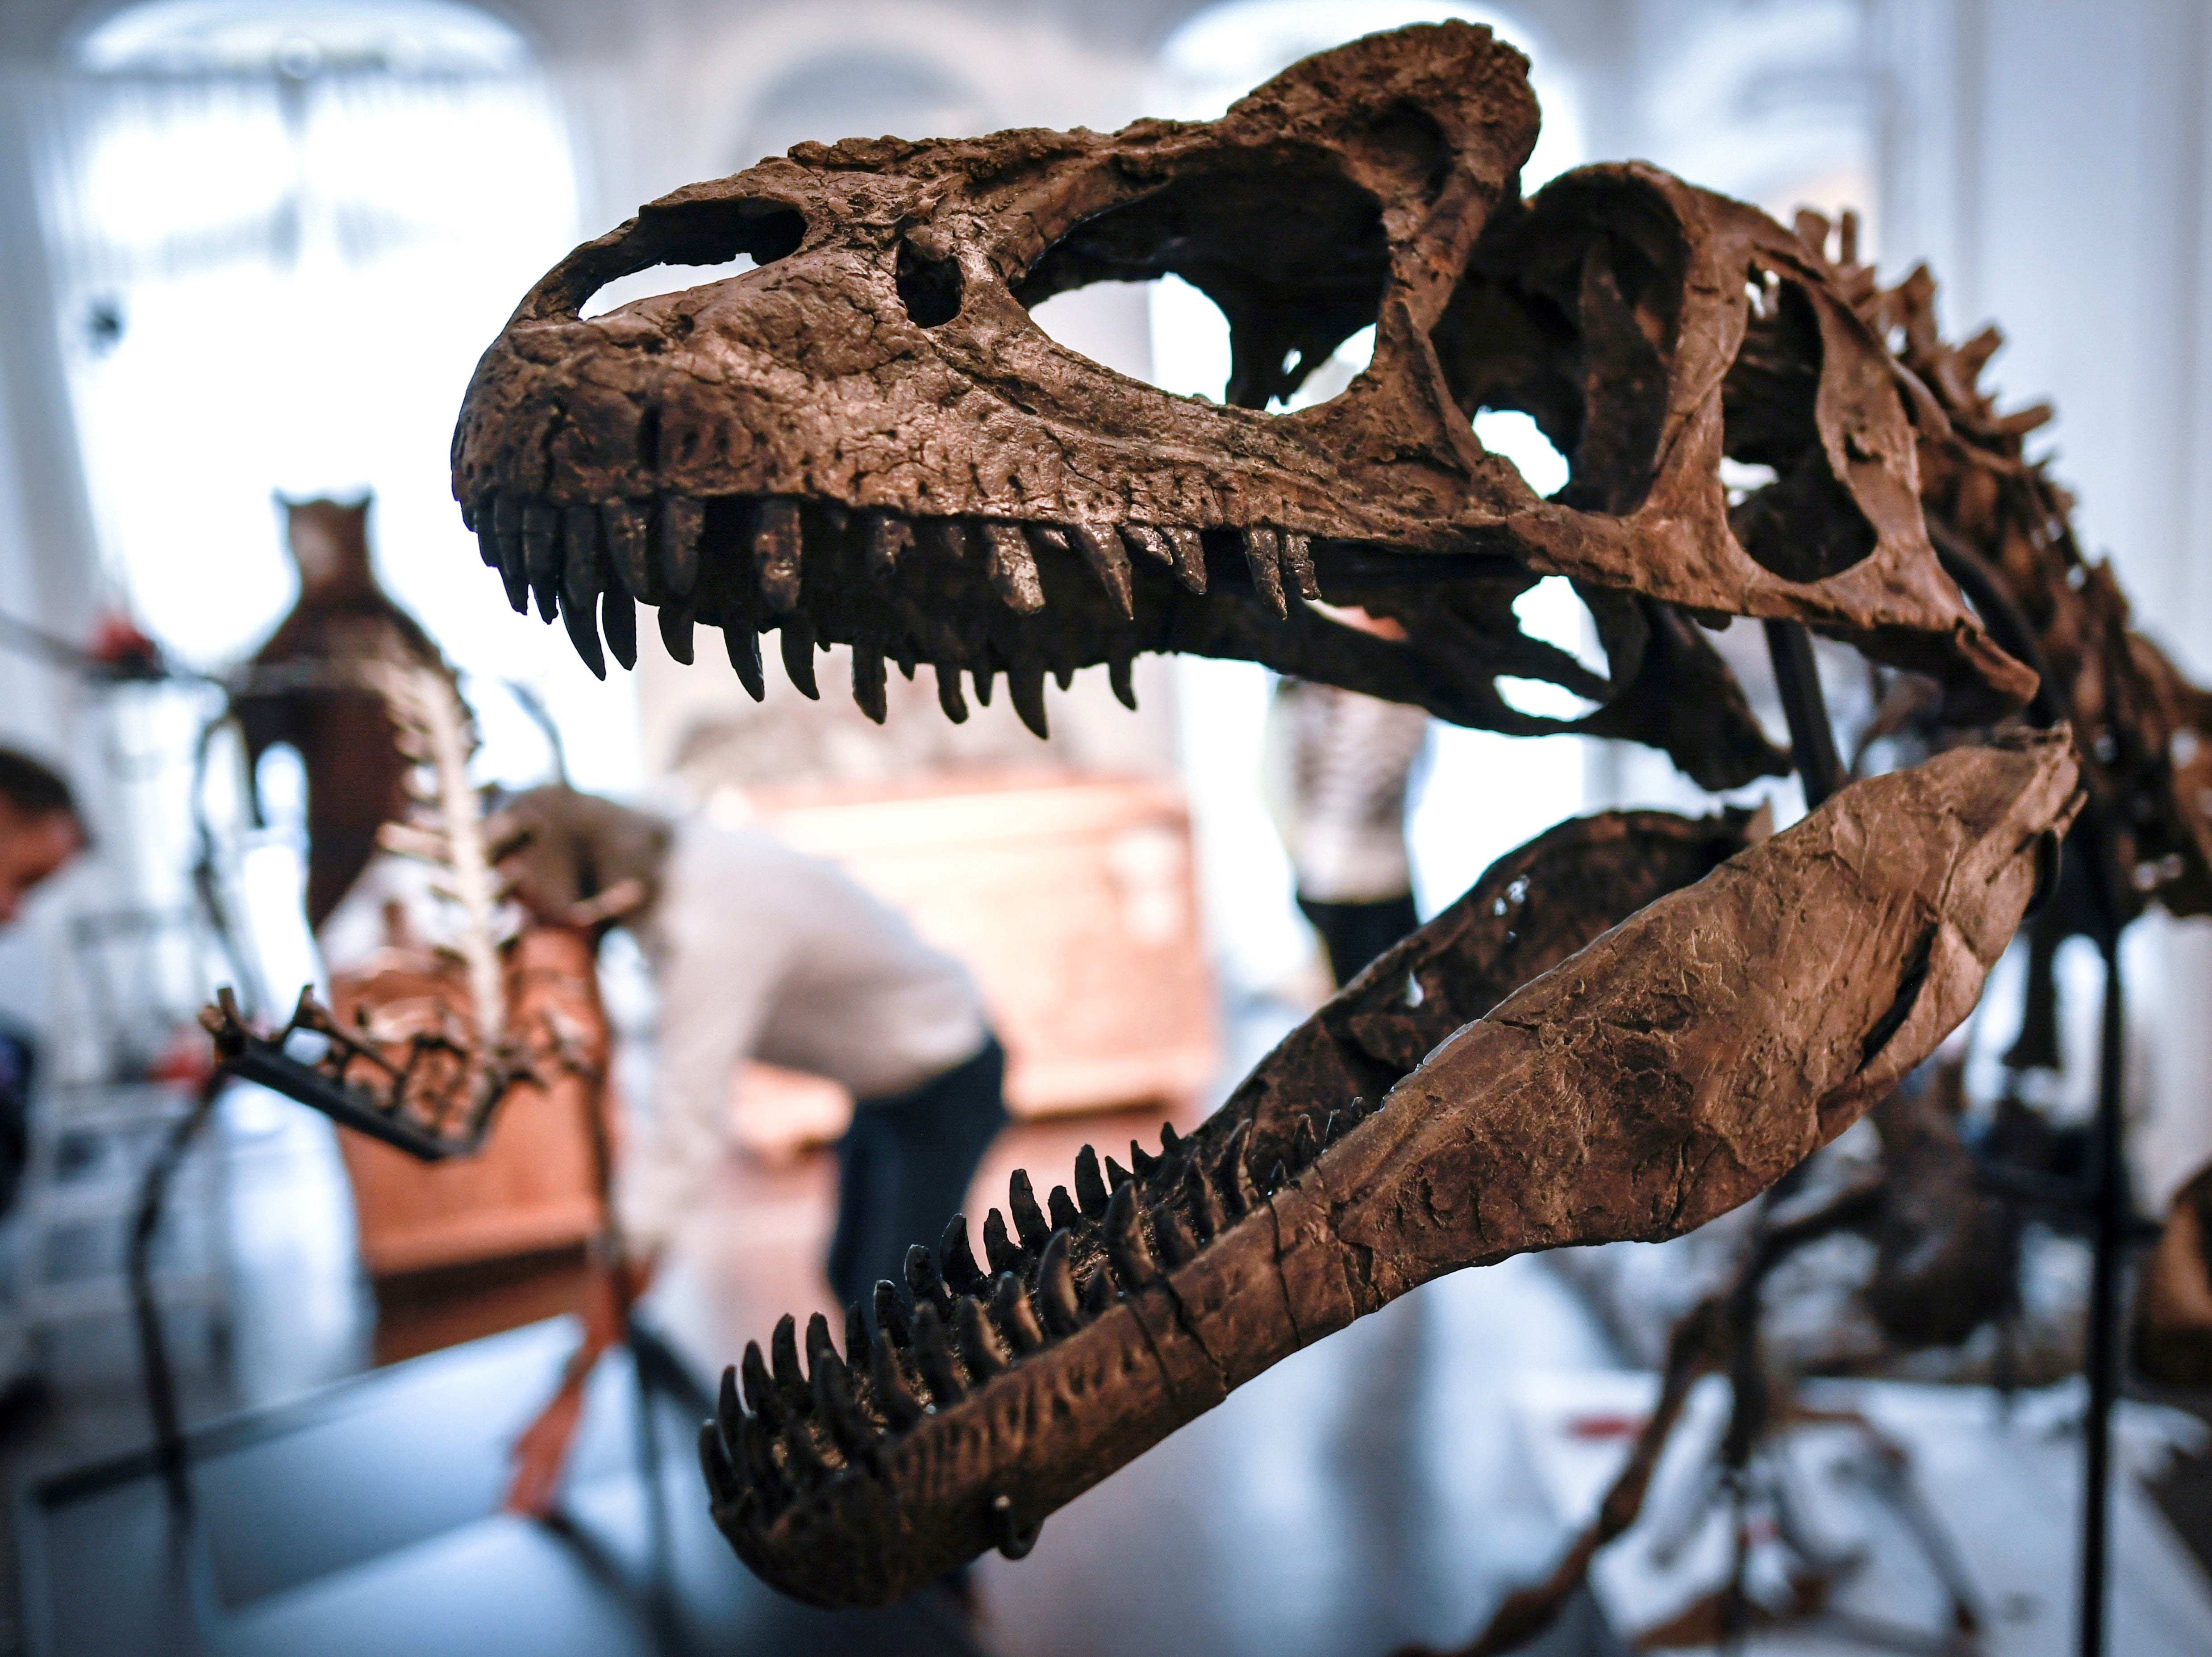 An Allosaurus skeleton is displayed on November 13, 2018, at the Artcurial auction house in Paris.